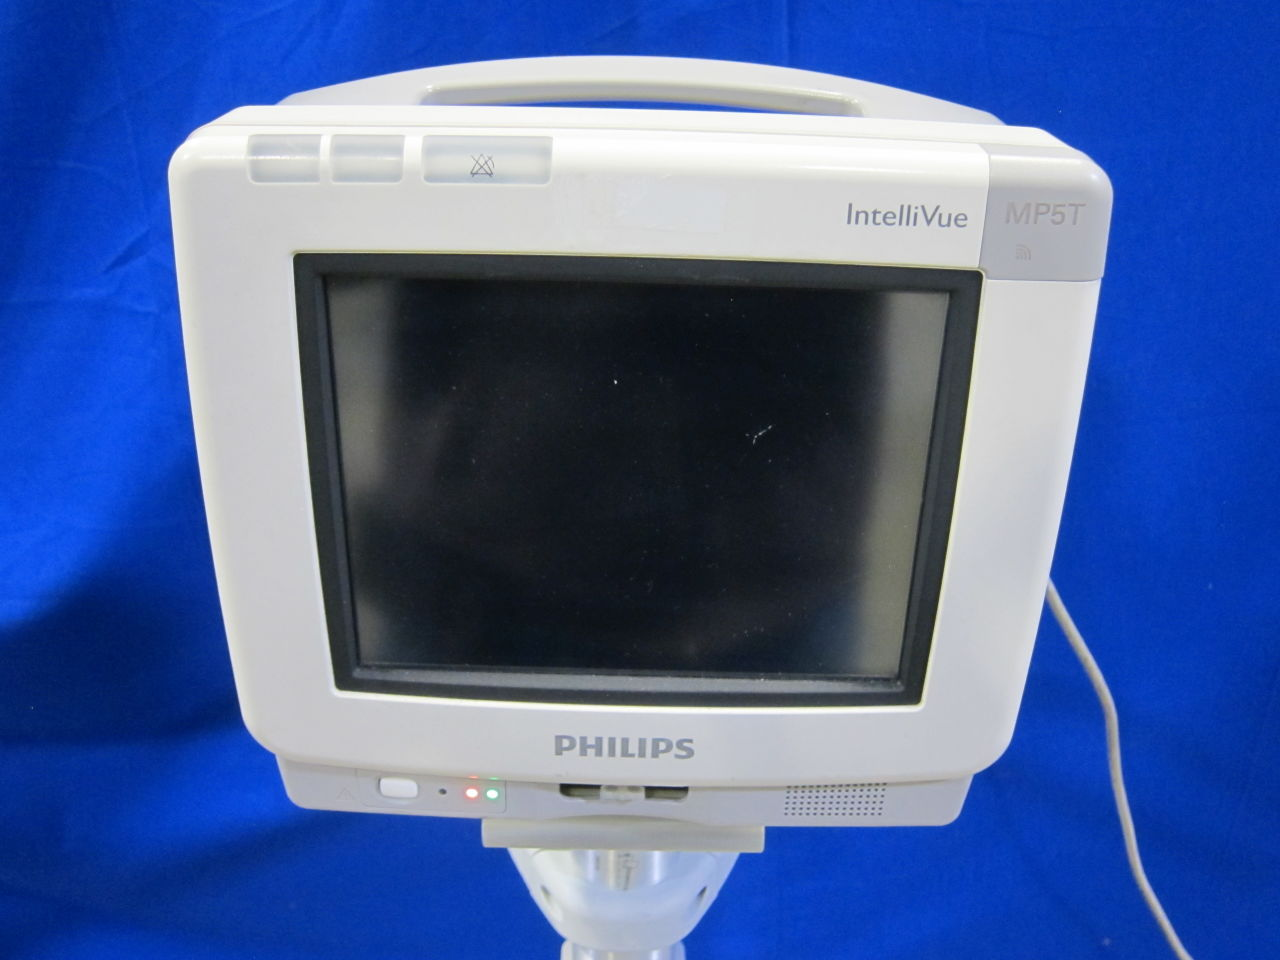 PHILIPS Intellivue MP5T Monitor